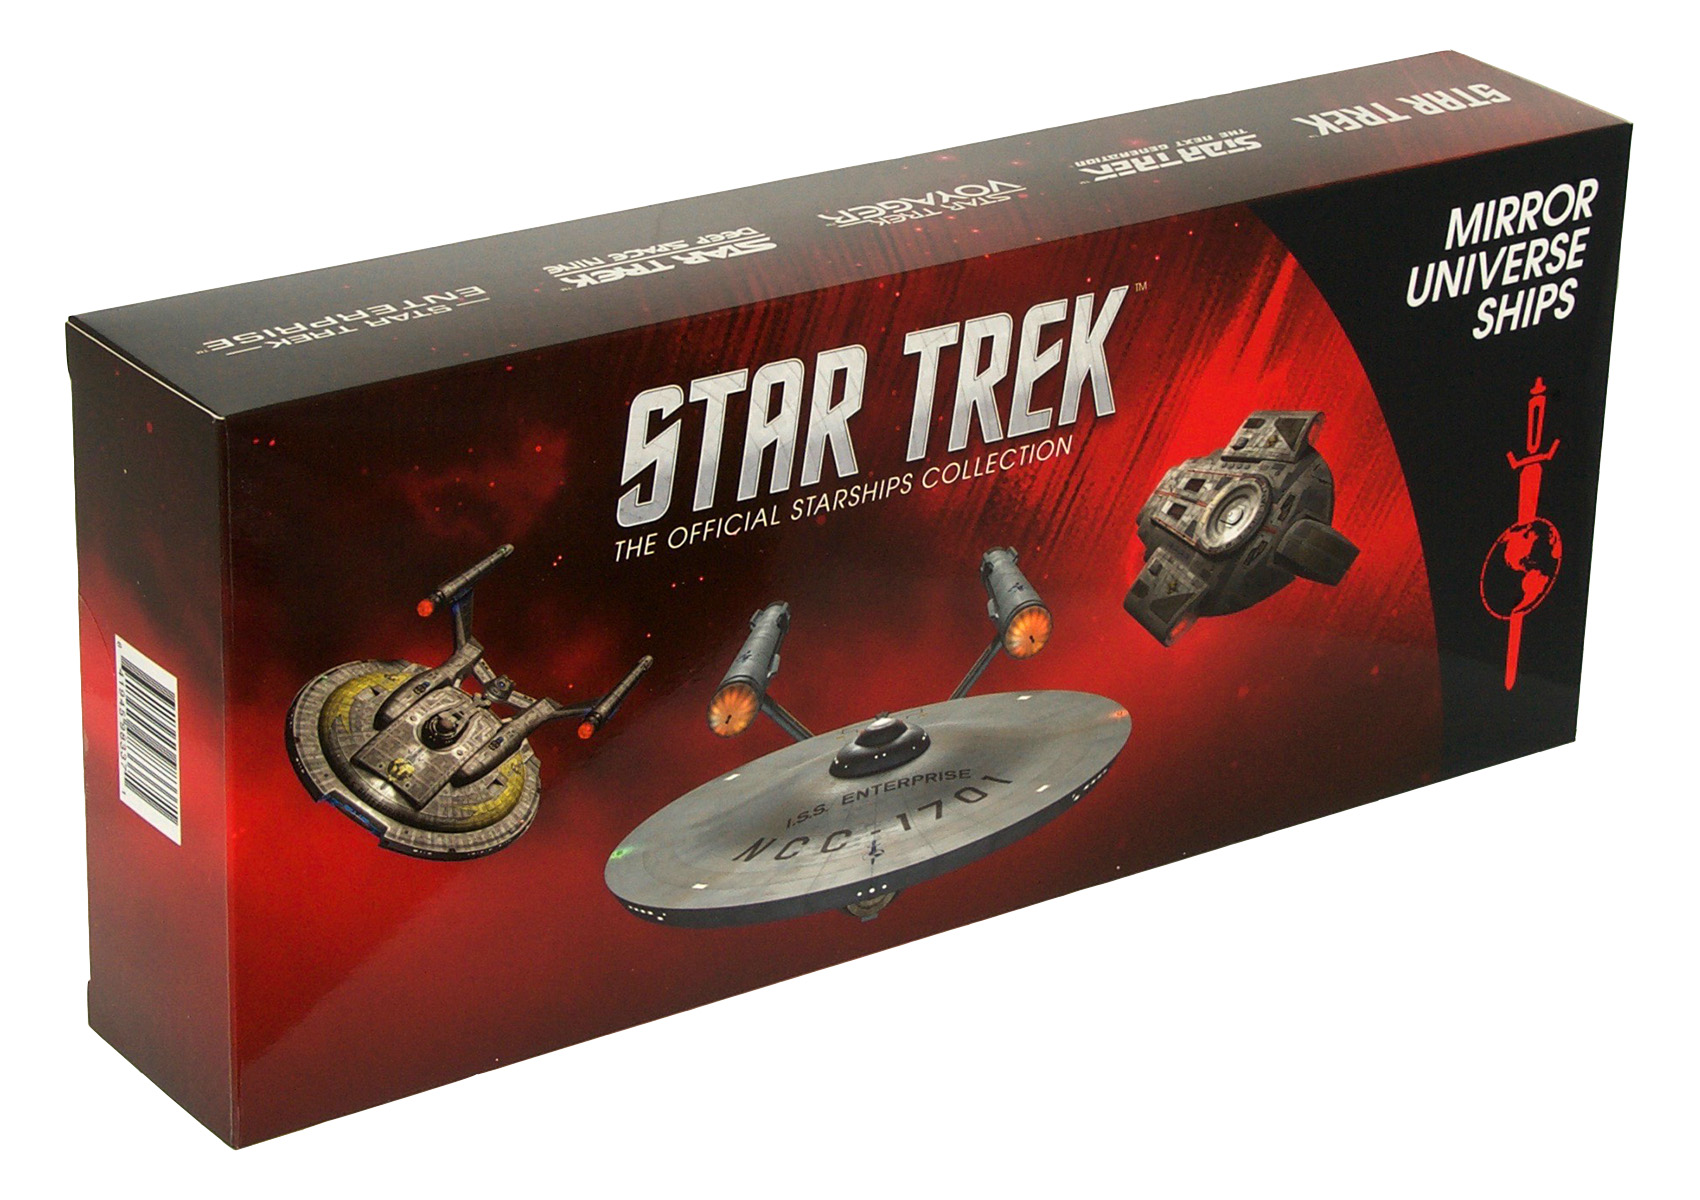 Eaglemoss Star Trek Starships Mirror Universe Set Box